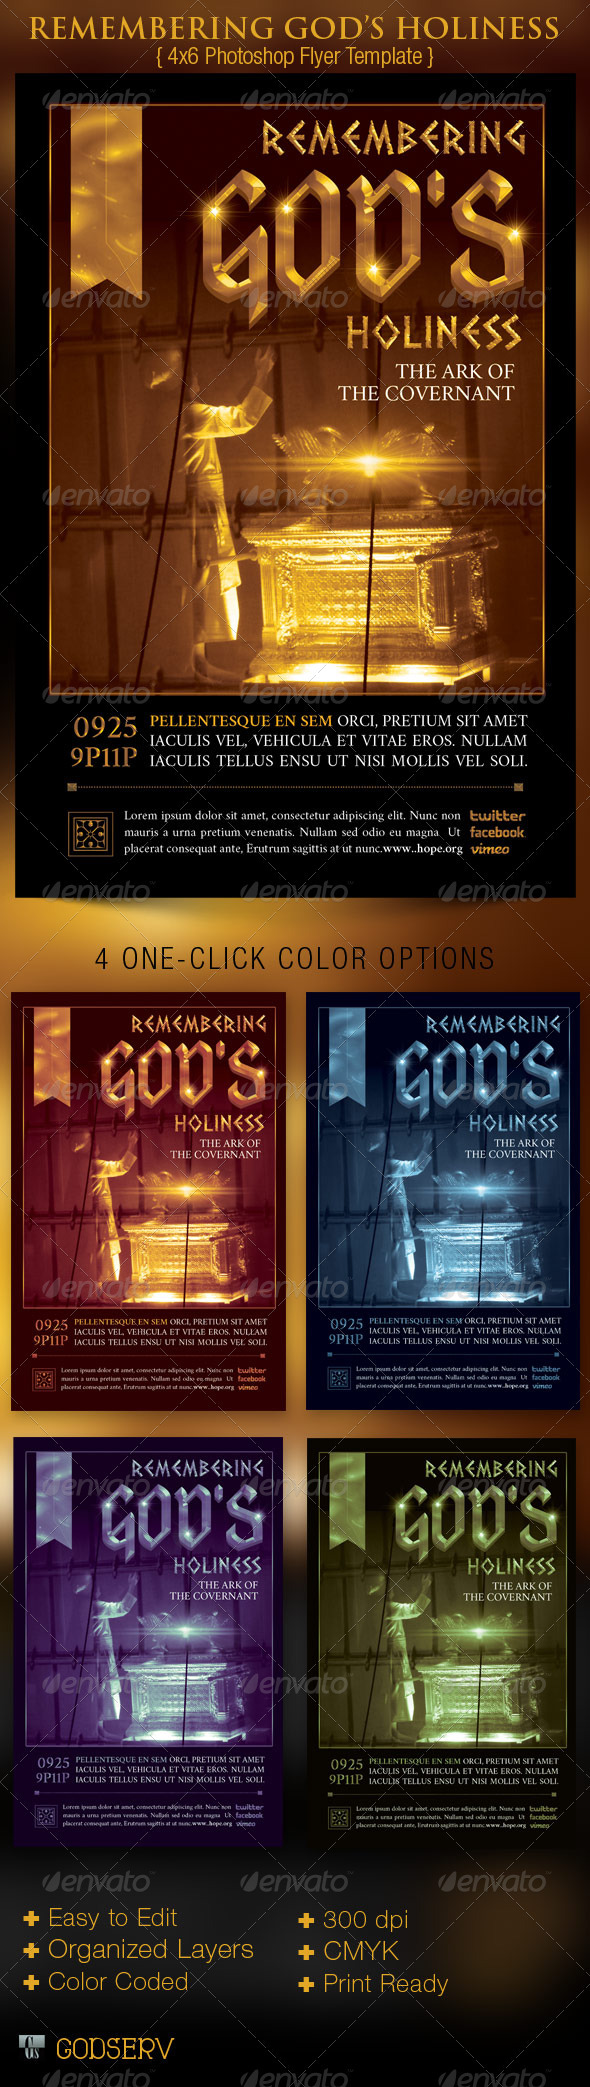 Remembering God's Holiness Church Flyer Template - Church Flyers